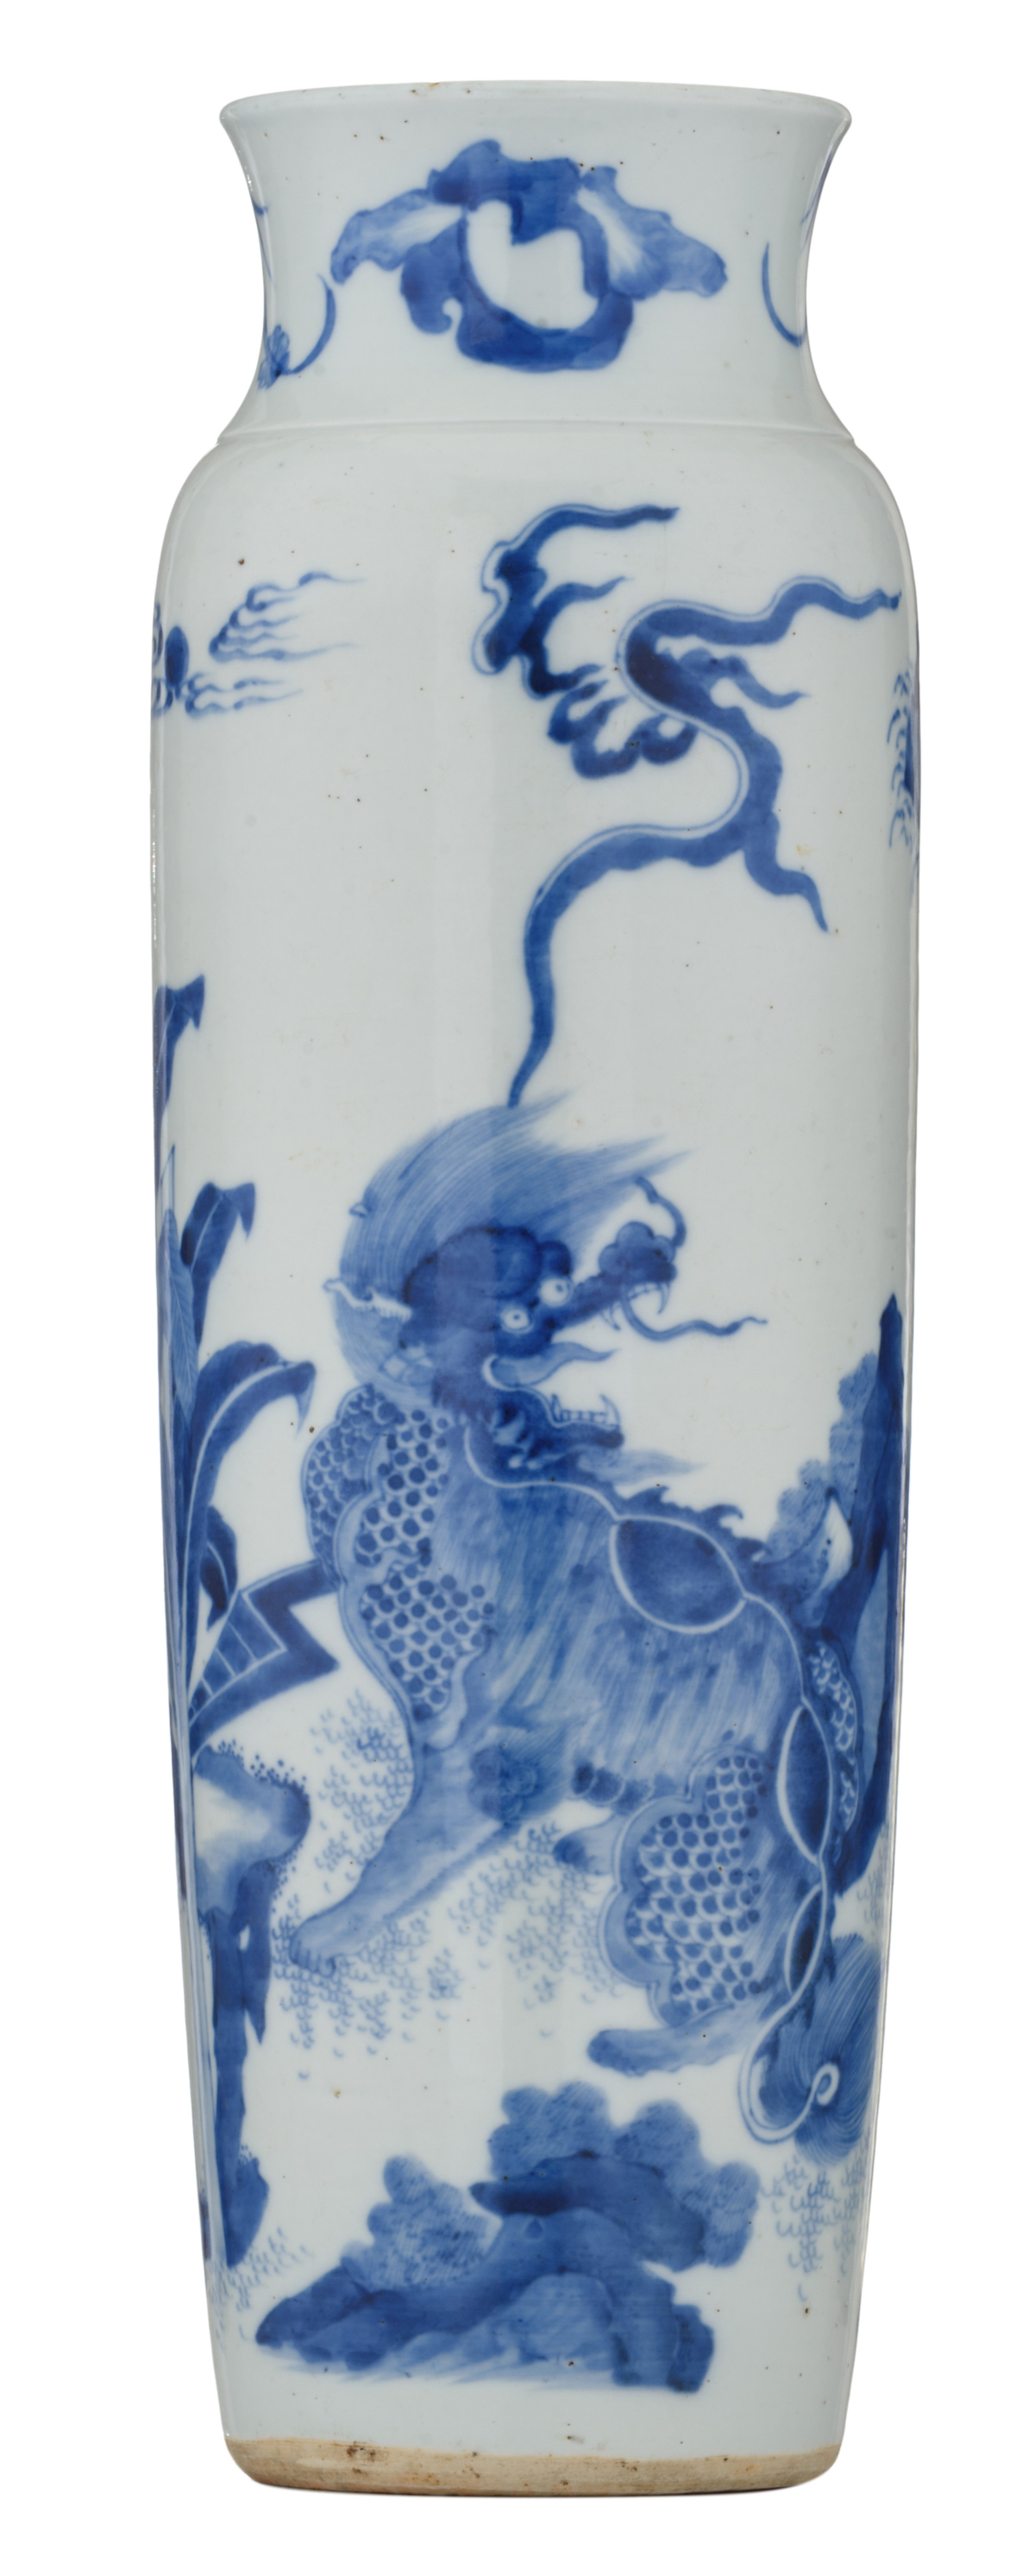 Lot 48 - A Chinese blue and white cylinder shaped vase, overall decorated with kylins playing in a garden,